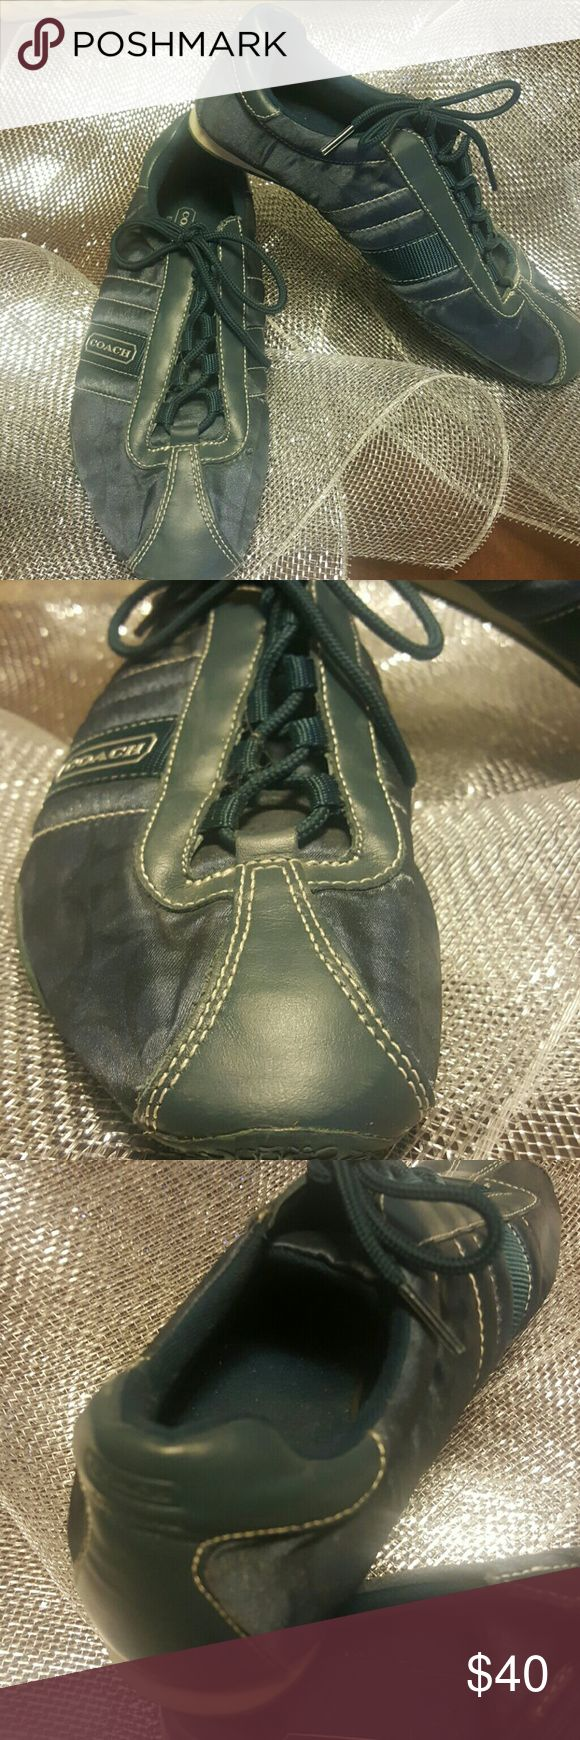 Rare teal blue coach tennis shoes....offers accept Beautiful lightly worn teal blue tennis shoes. Well taken care of & comfy Coach Shoes Sneakers